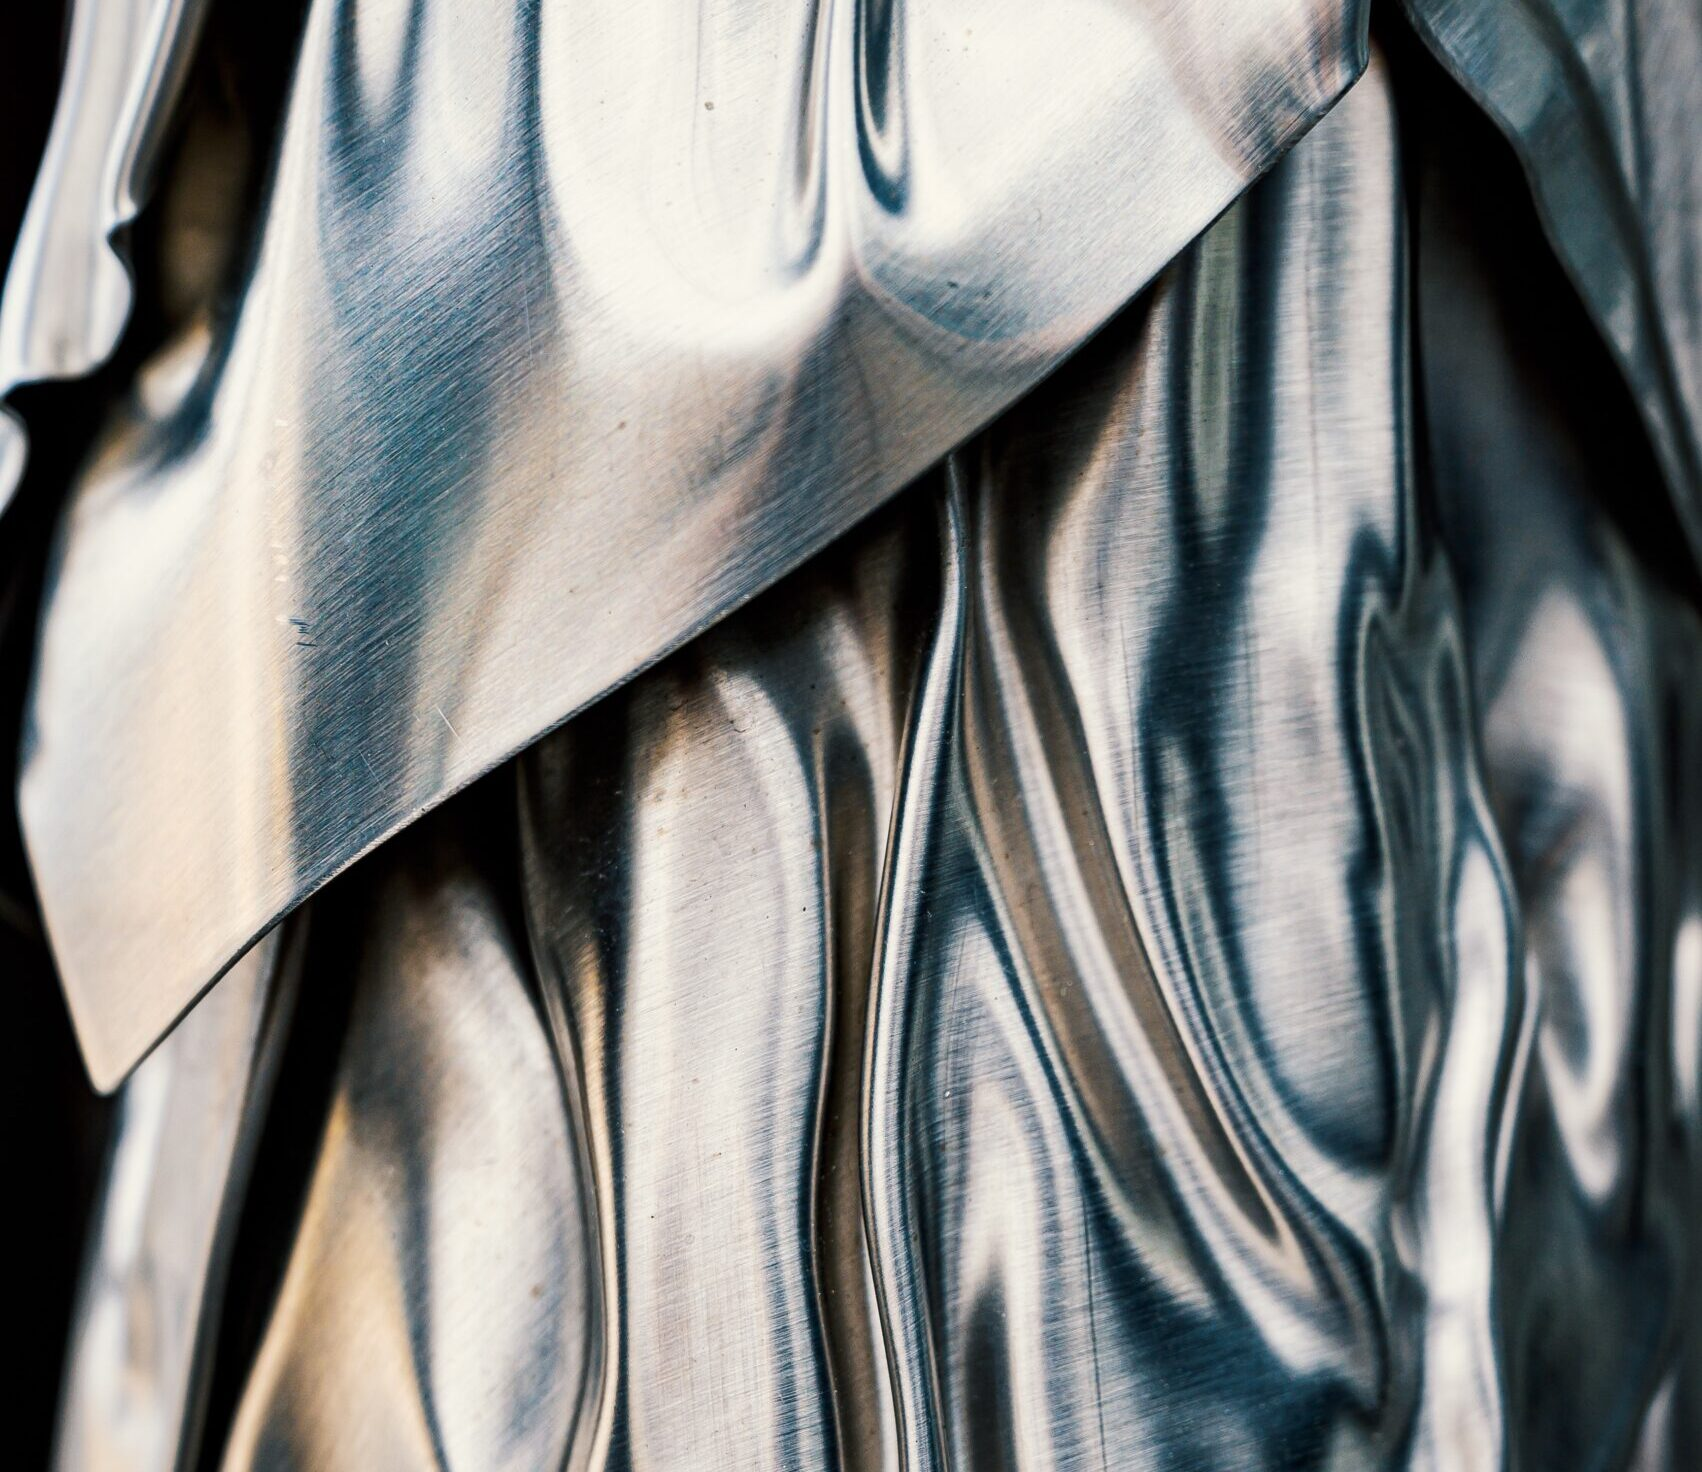 silver grey shiny silky sheet with many folds and creases in it